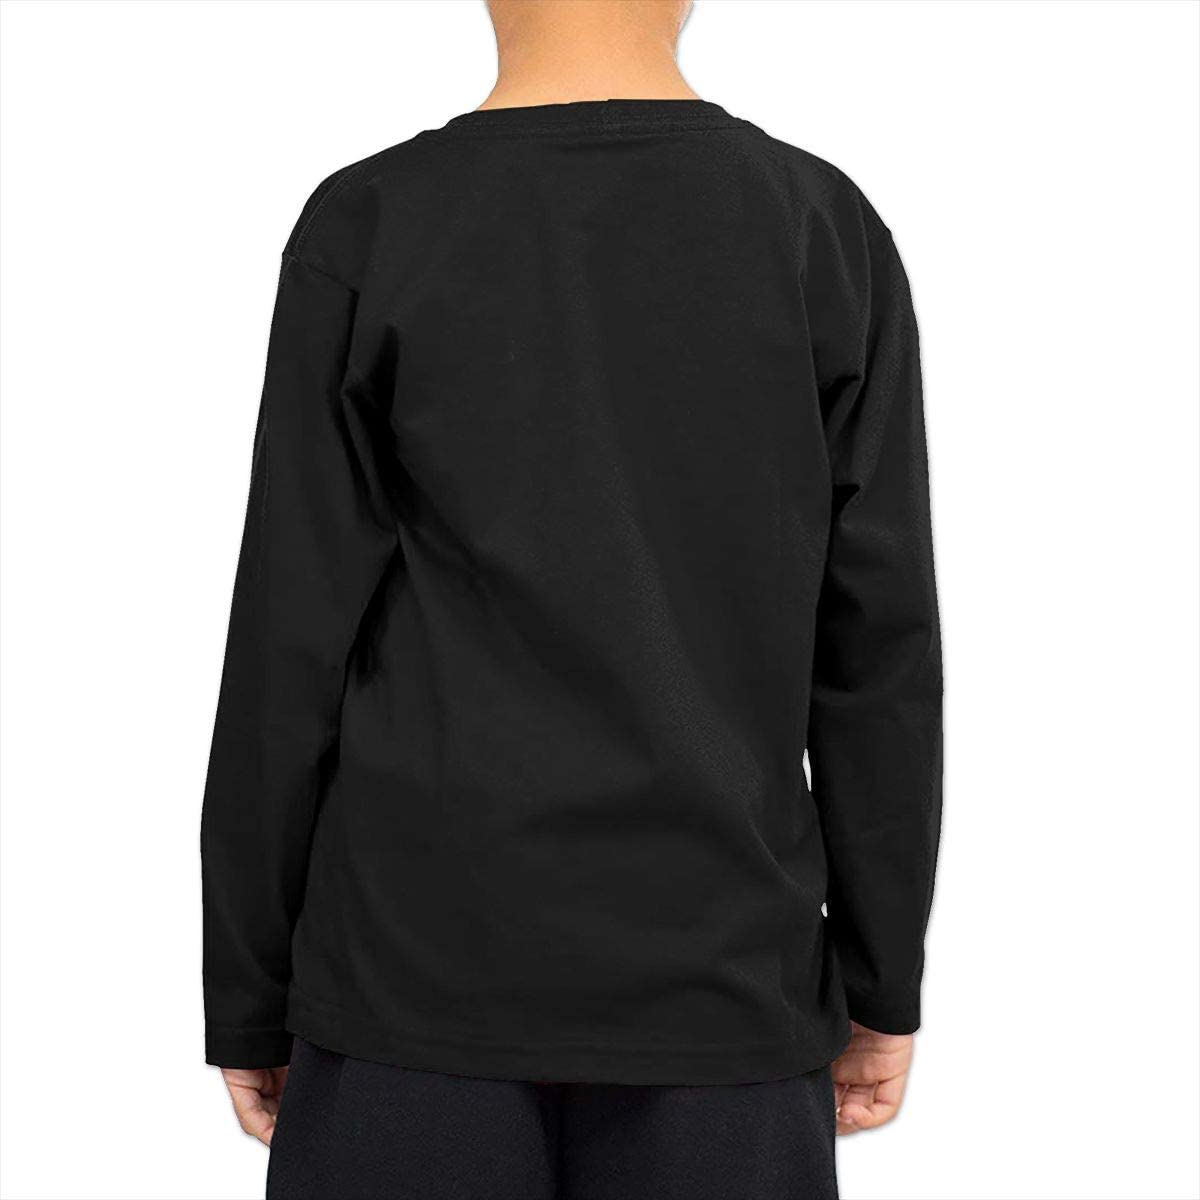 OLIVIA FLYNN Deltarune Boys Girls Long Sleeve T-Shirt Cotton Shirts Tee Children Suitable Aged 2-6